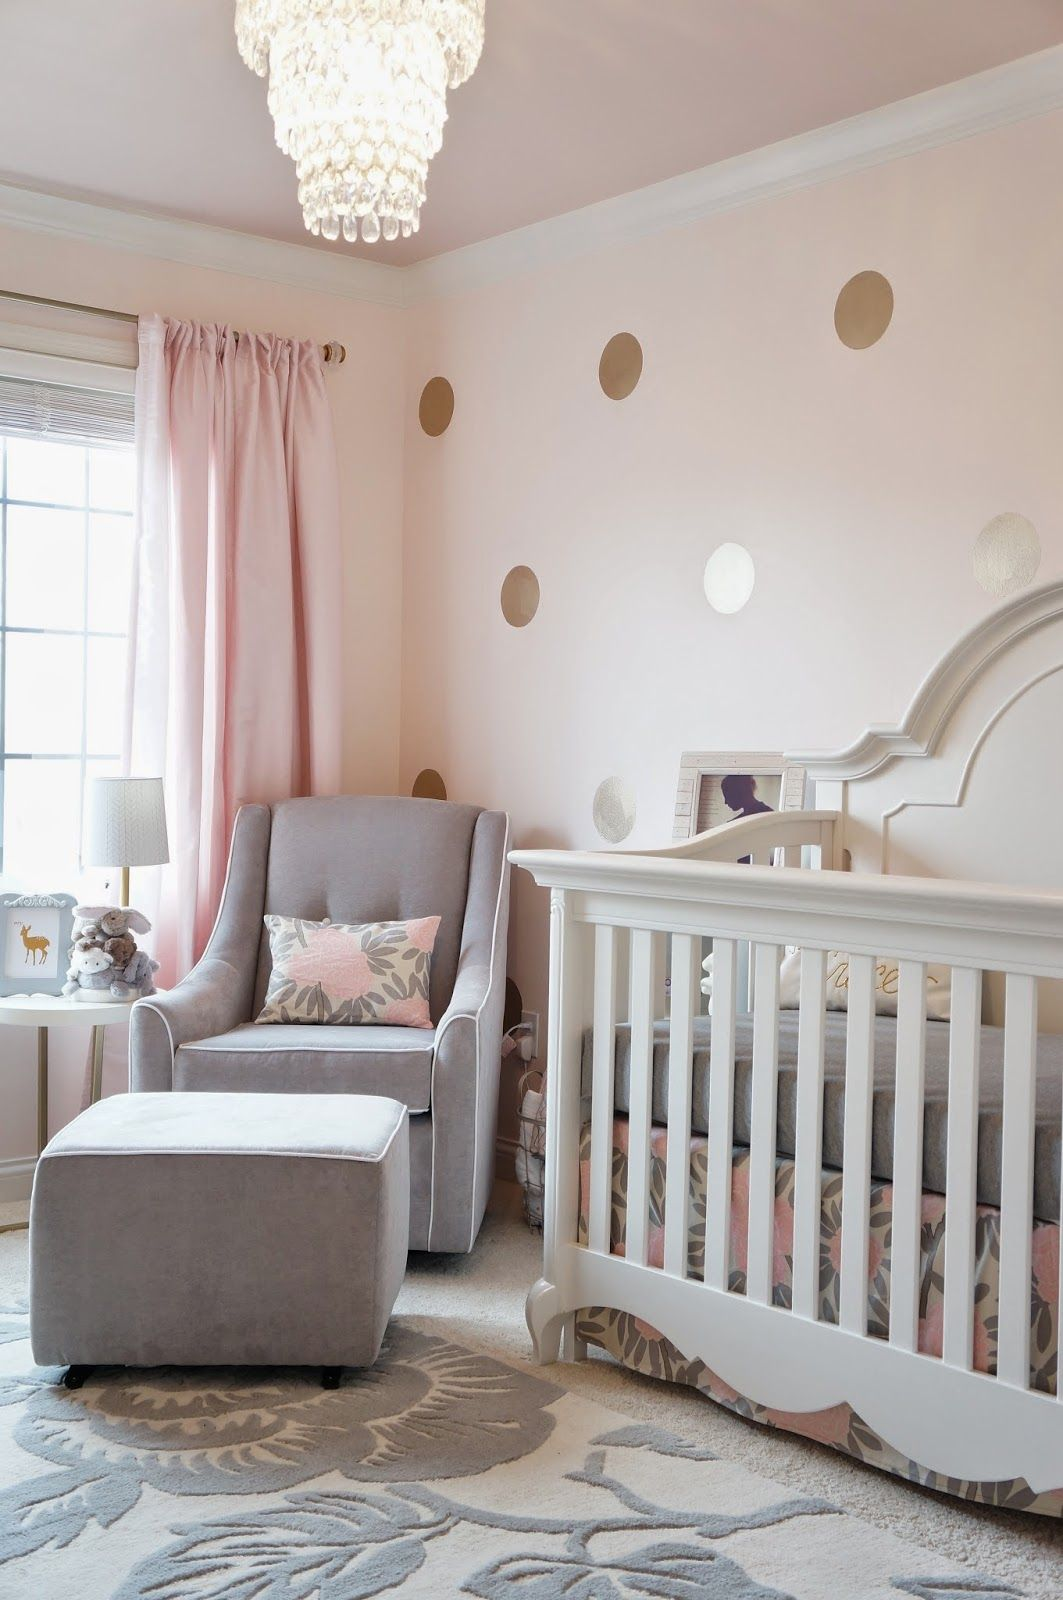 39 id es inspirations pour la d coration de la chambre b b photos pink grey house